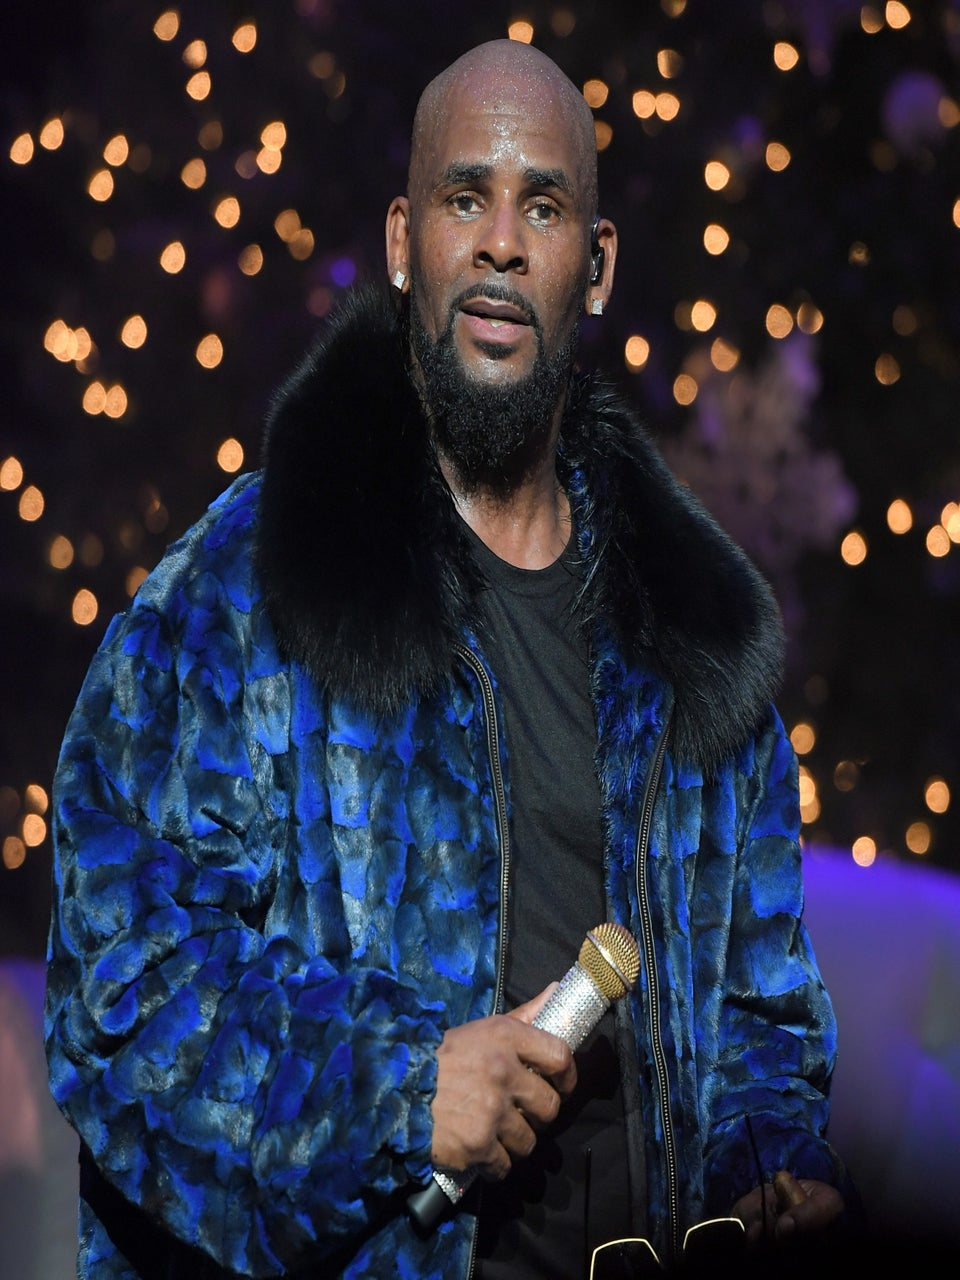 R. Kelly's Lawyer And Publicist Ditch Singer Amid More Sexual Misconduct Allegations